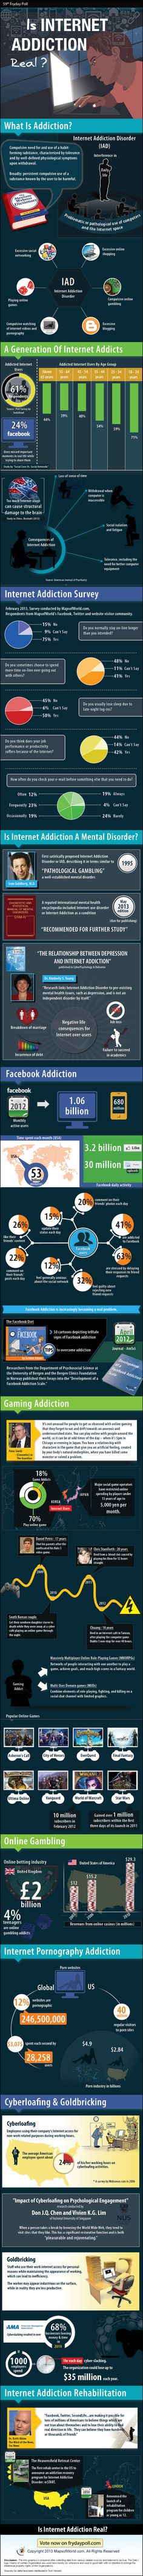 Internet Addiction: Is This Online Disorder Real? [Infographic]